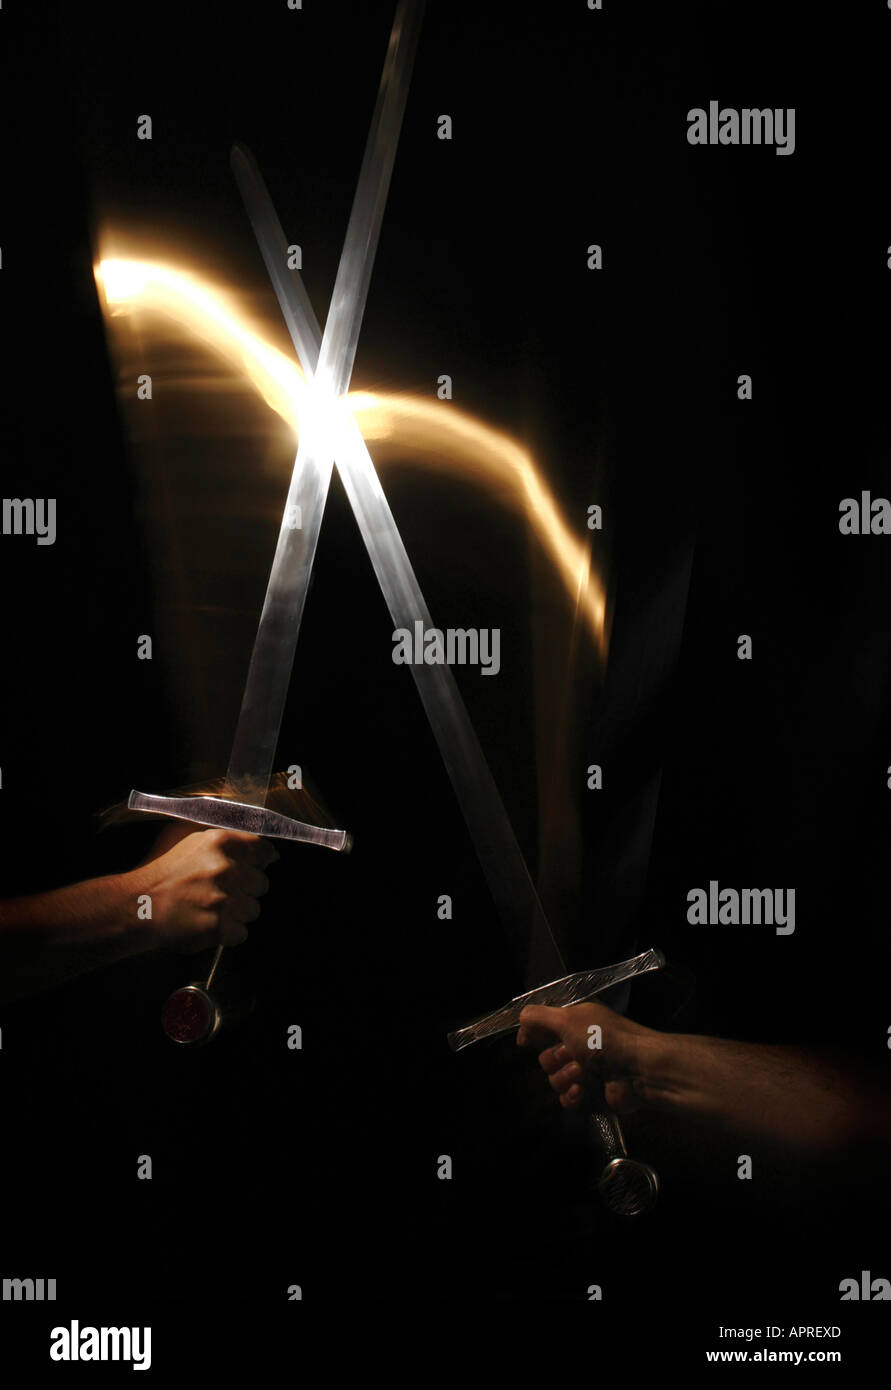 A clash of swords in the darkness. - Stock Image